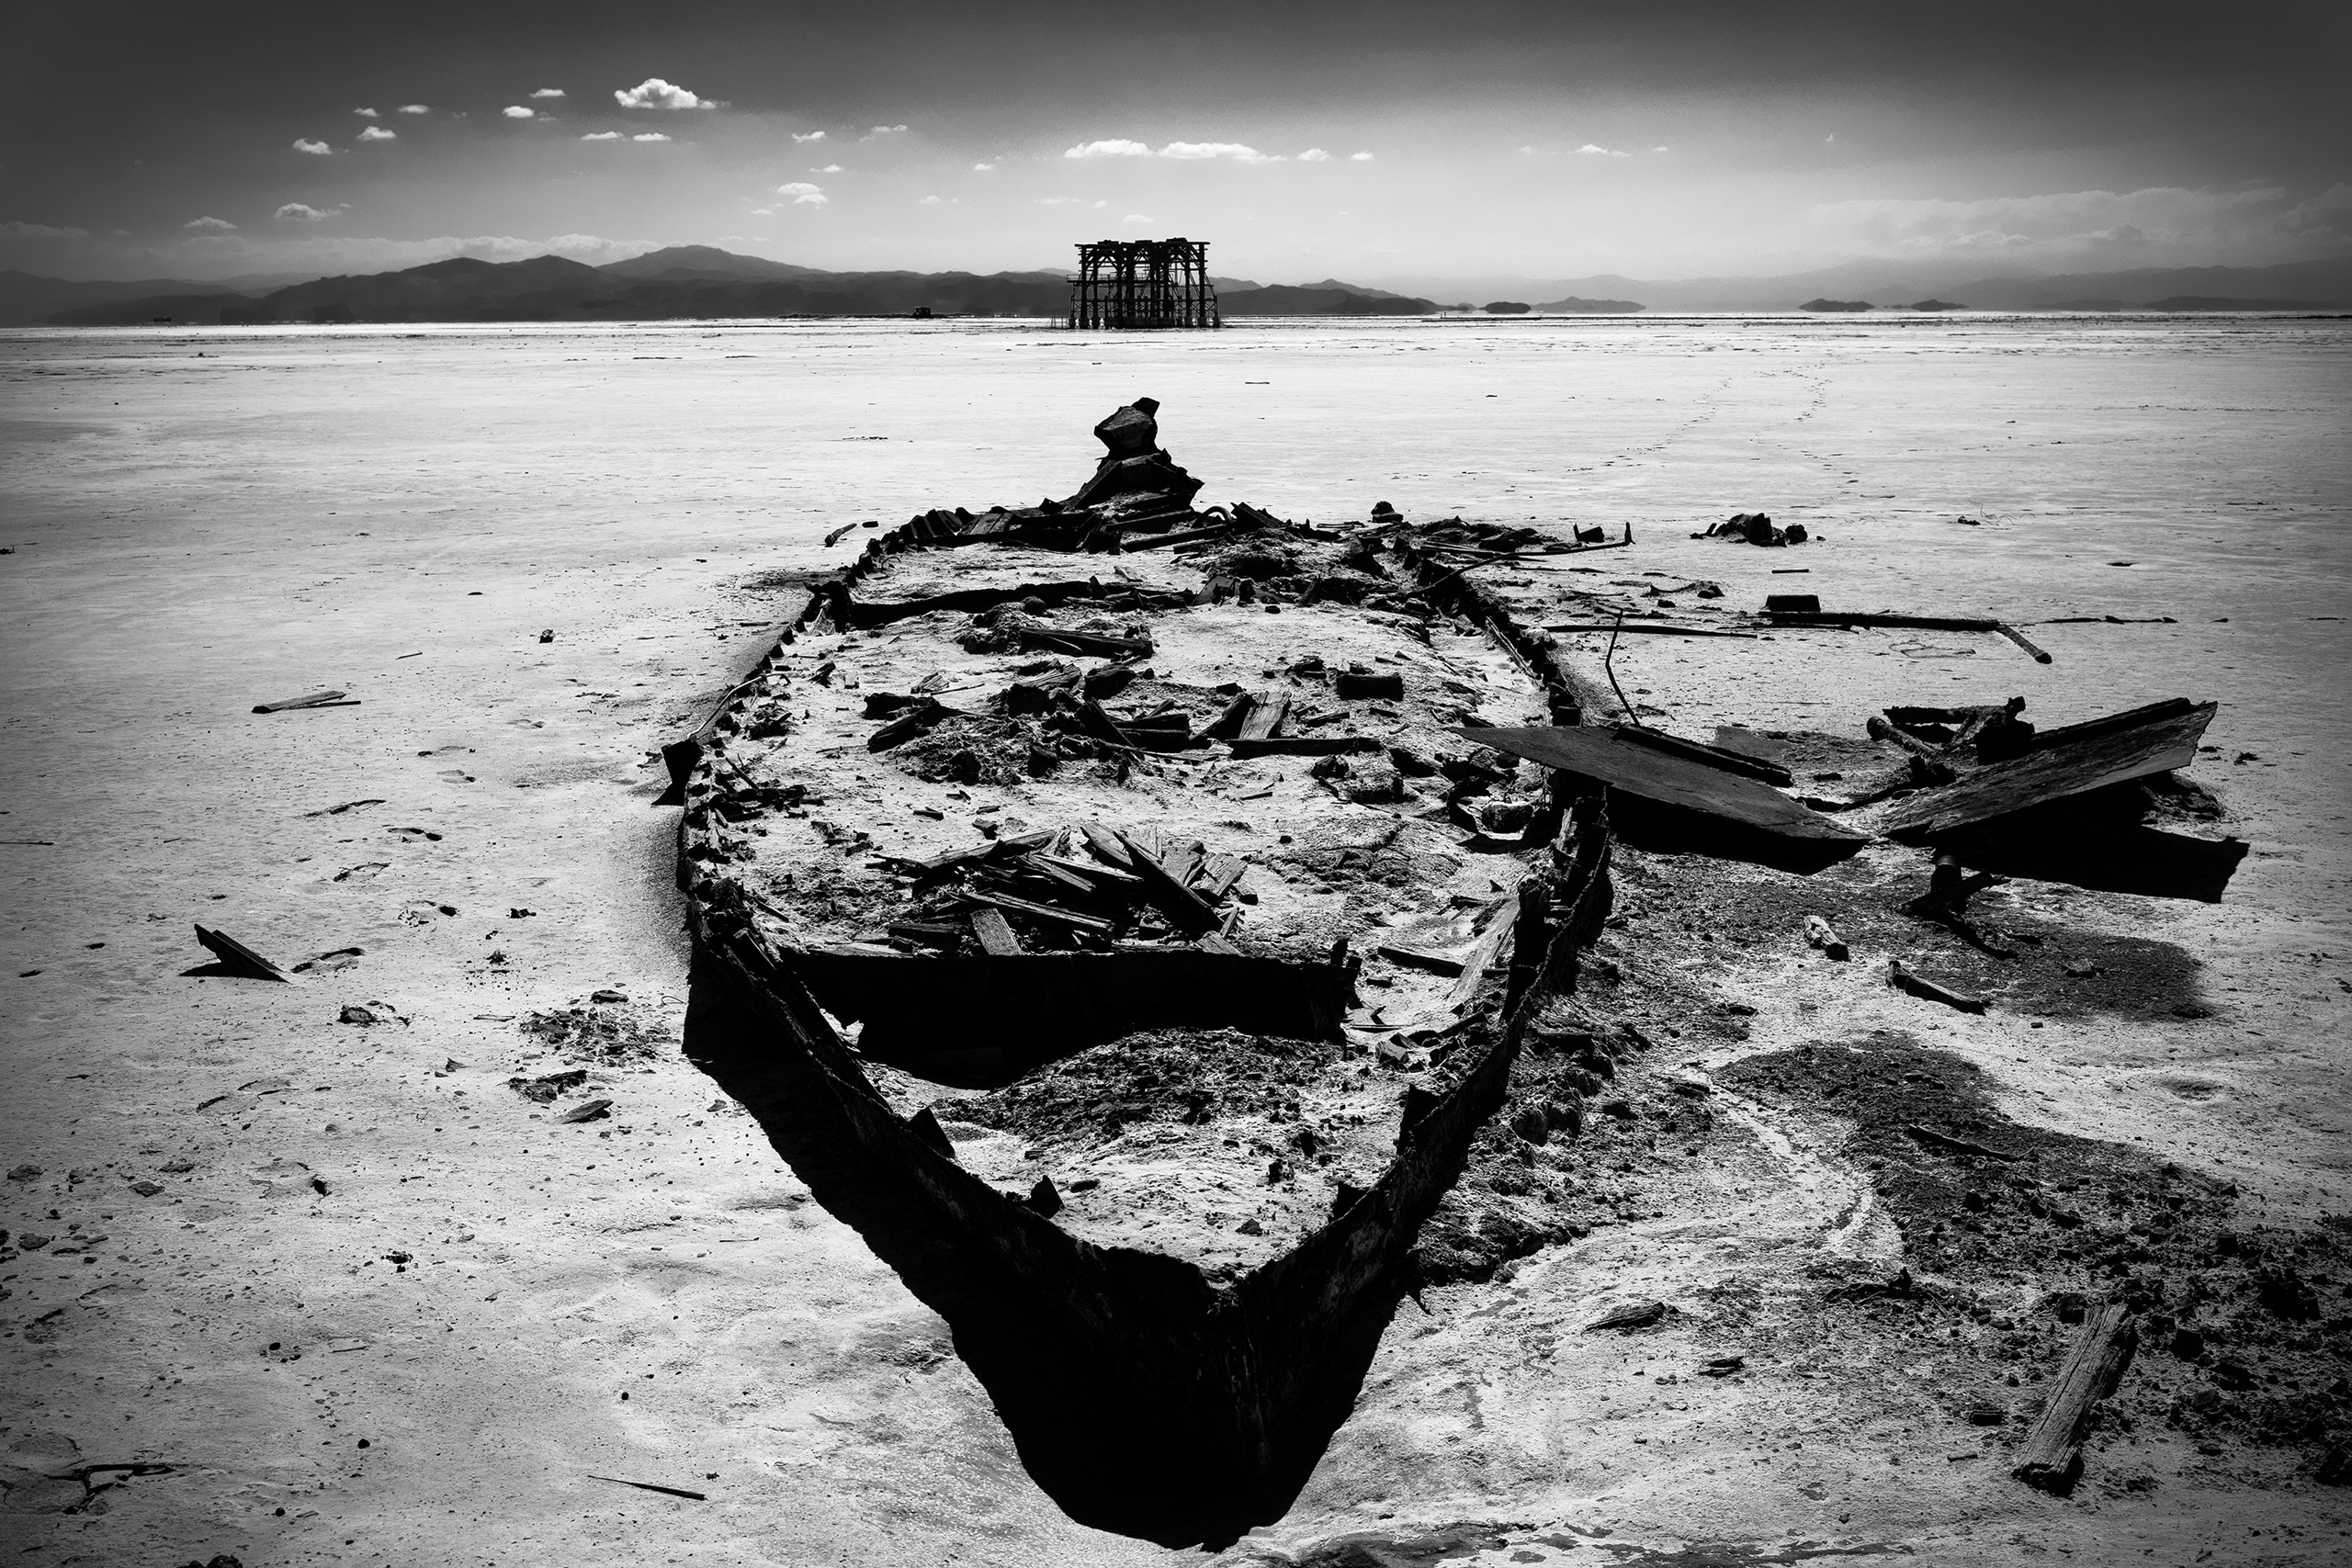 The remains of a boat on the dried-out seabed of Lake Urmia, the port of Sharafghaneh, Iran, July 2016. Drought has impacted tourism to the city.